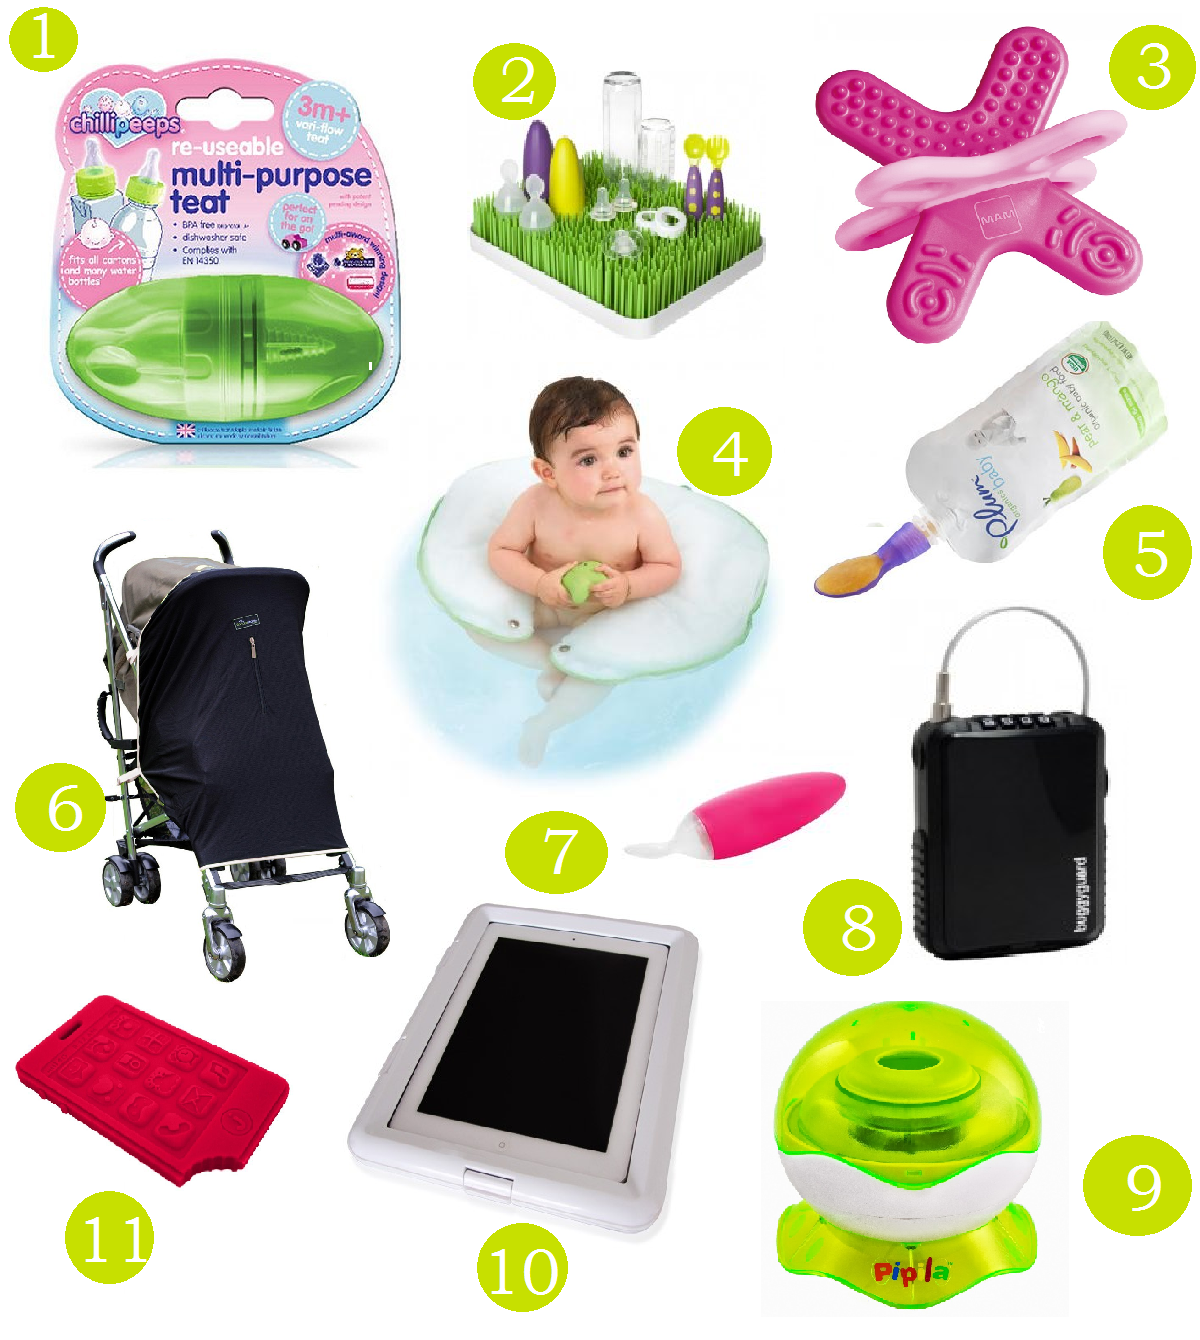 15-New-Baby-Gadgets-That-are-Making-Moms-Go-Ga-Ga-photo12 ...